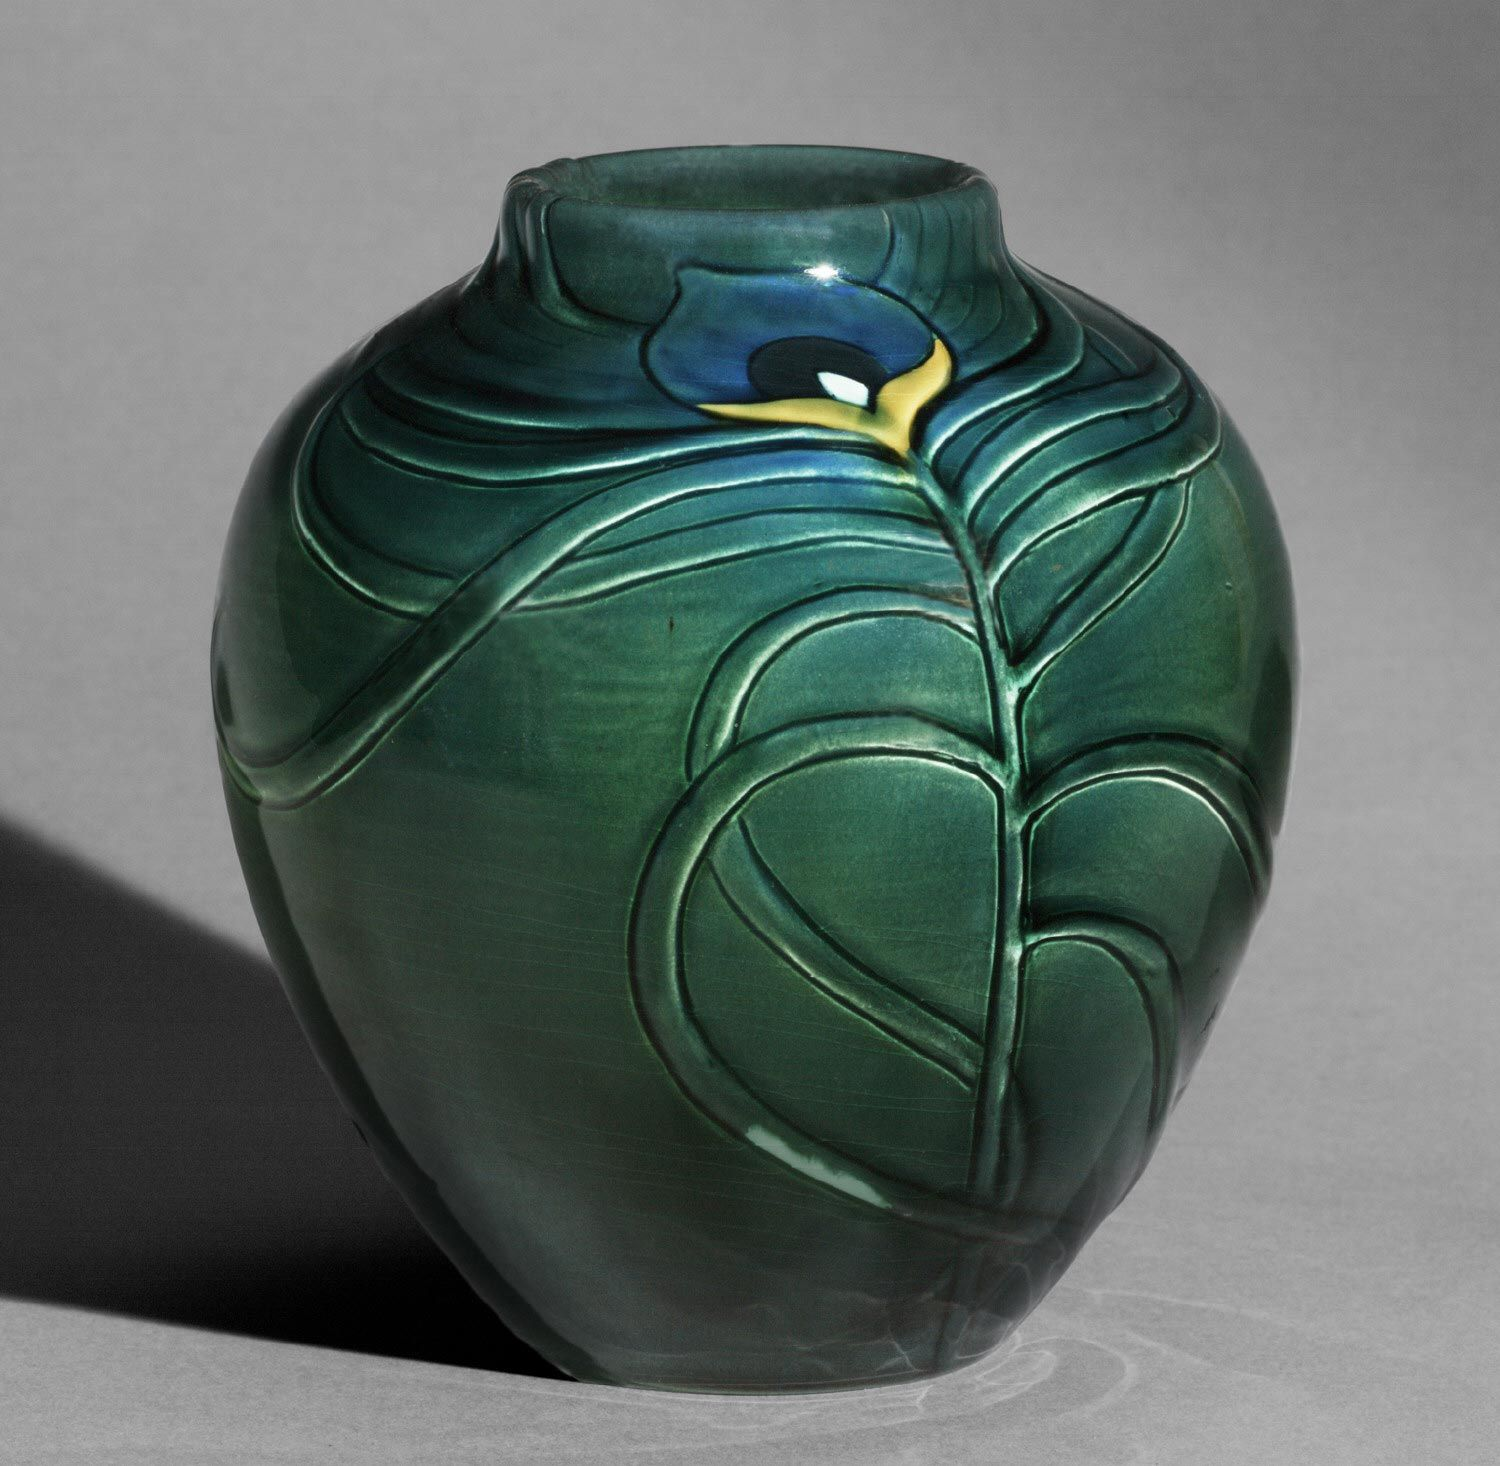 Made by Rookwood Pottery, Cincinnati, Ohio, 1880 - 1960. Decorated by Matthew Andrew Daly, American, 1860 - 1937, active at Rookwood Pottery...